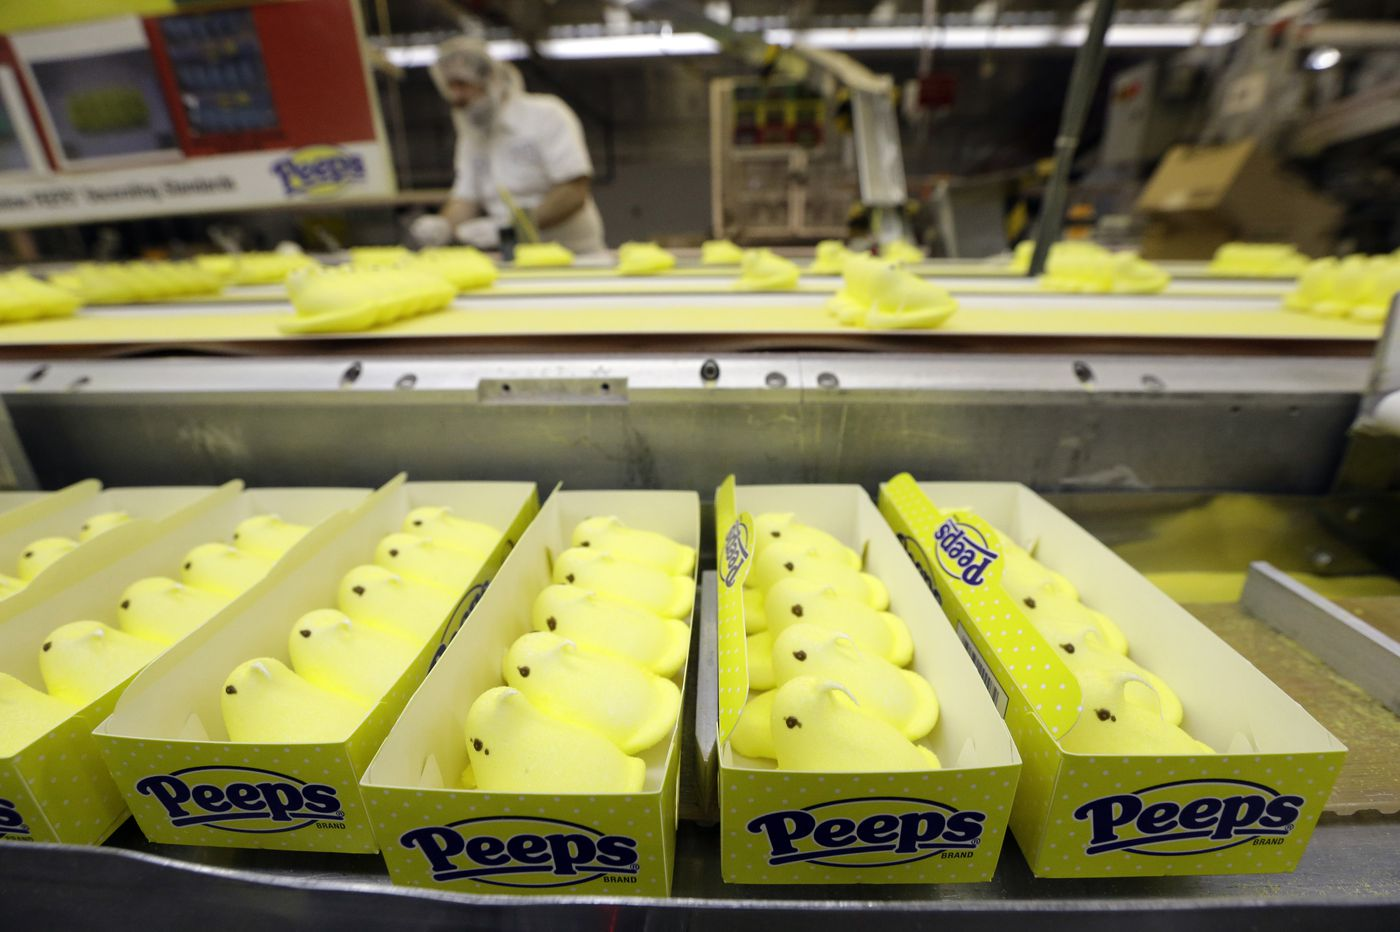 Peeps cease production two weeks before Easter due to the coronavirus